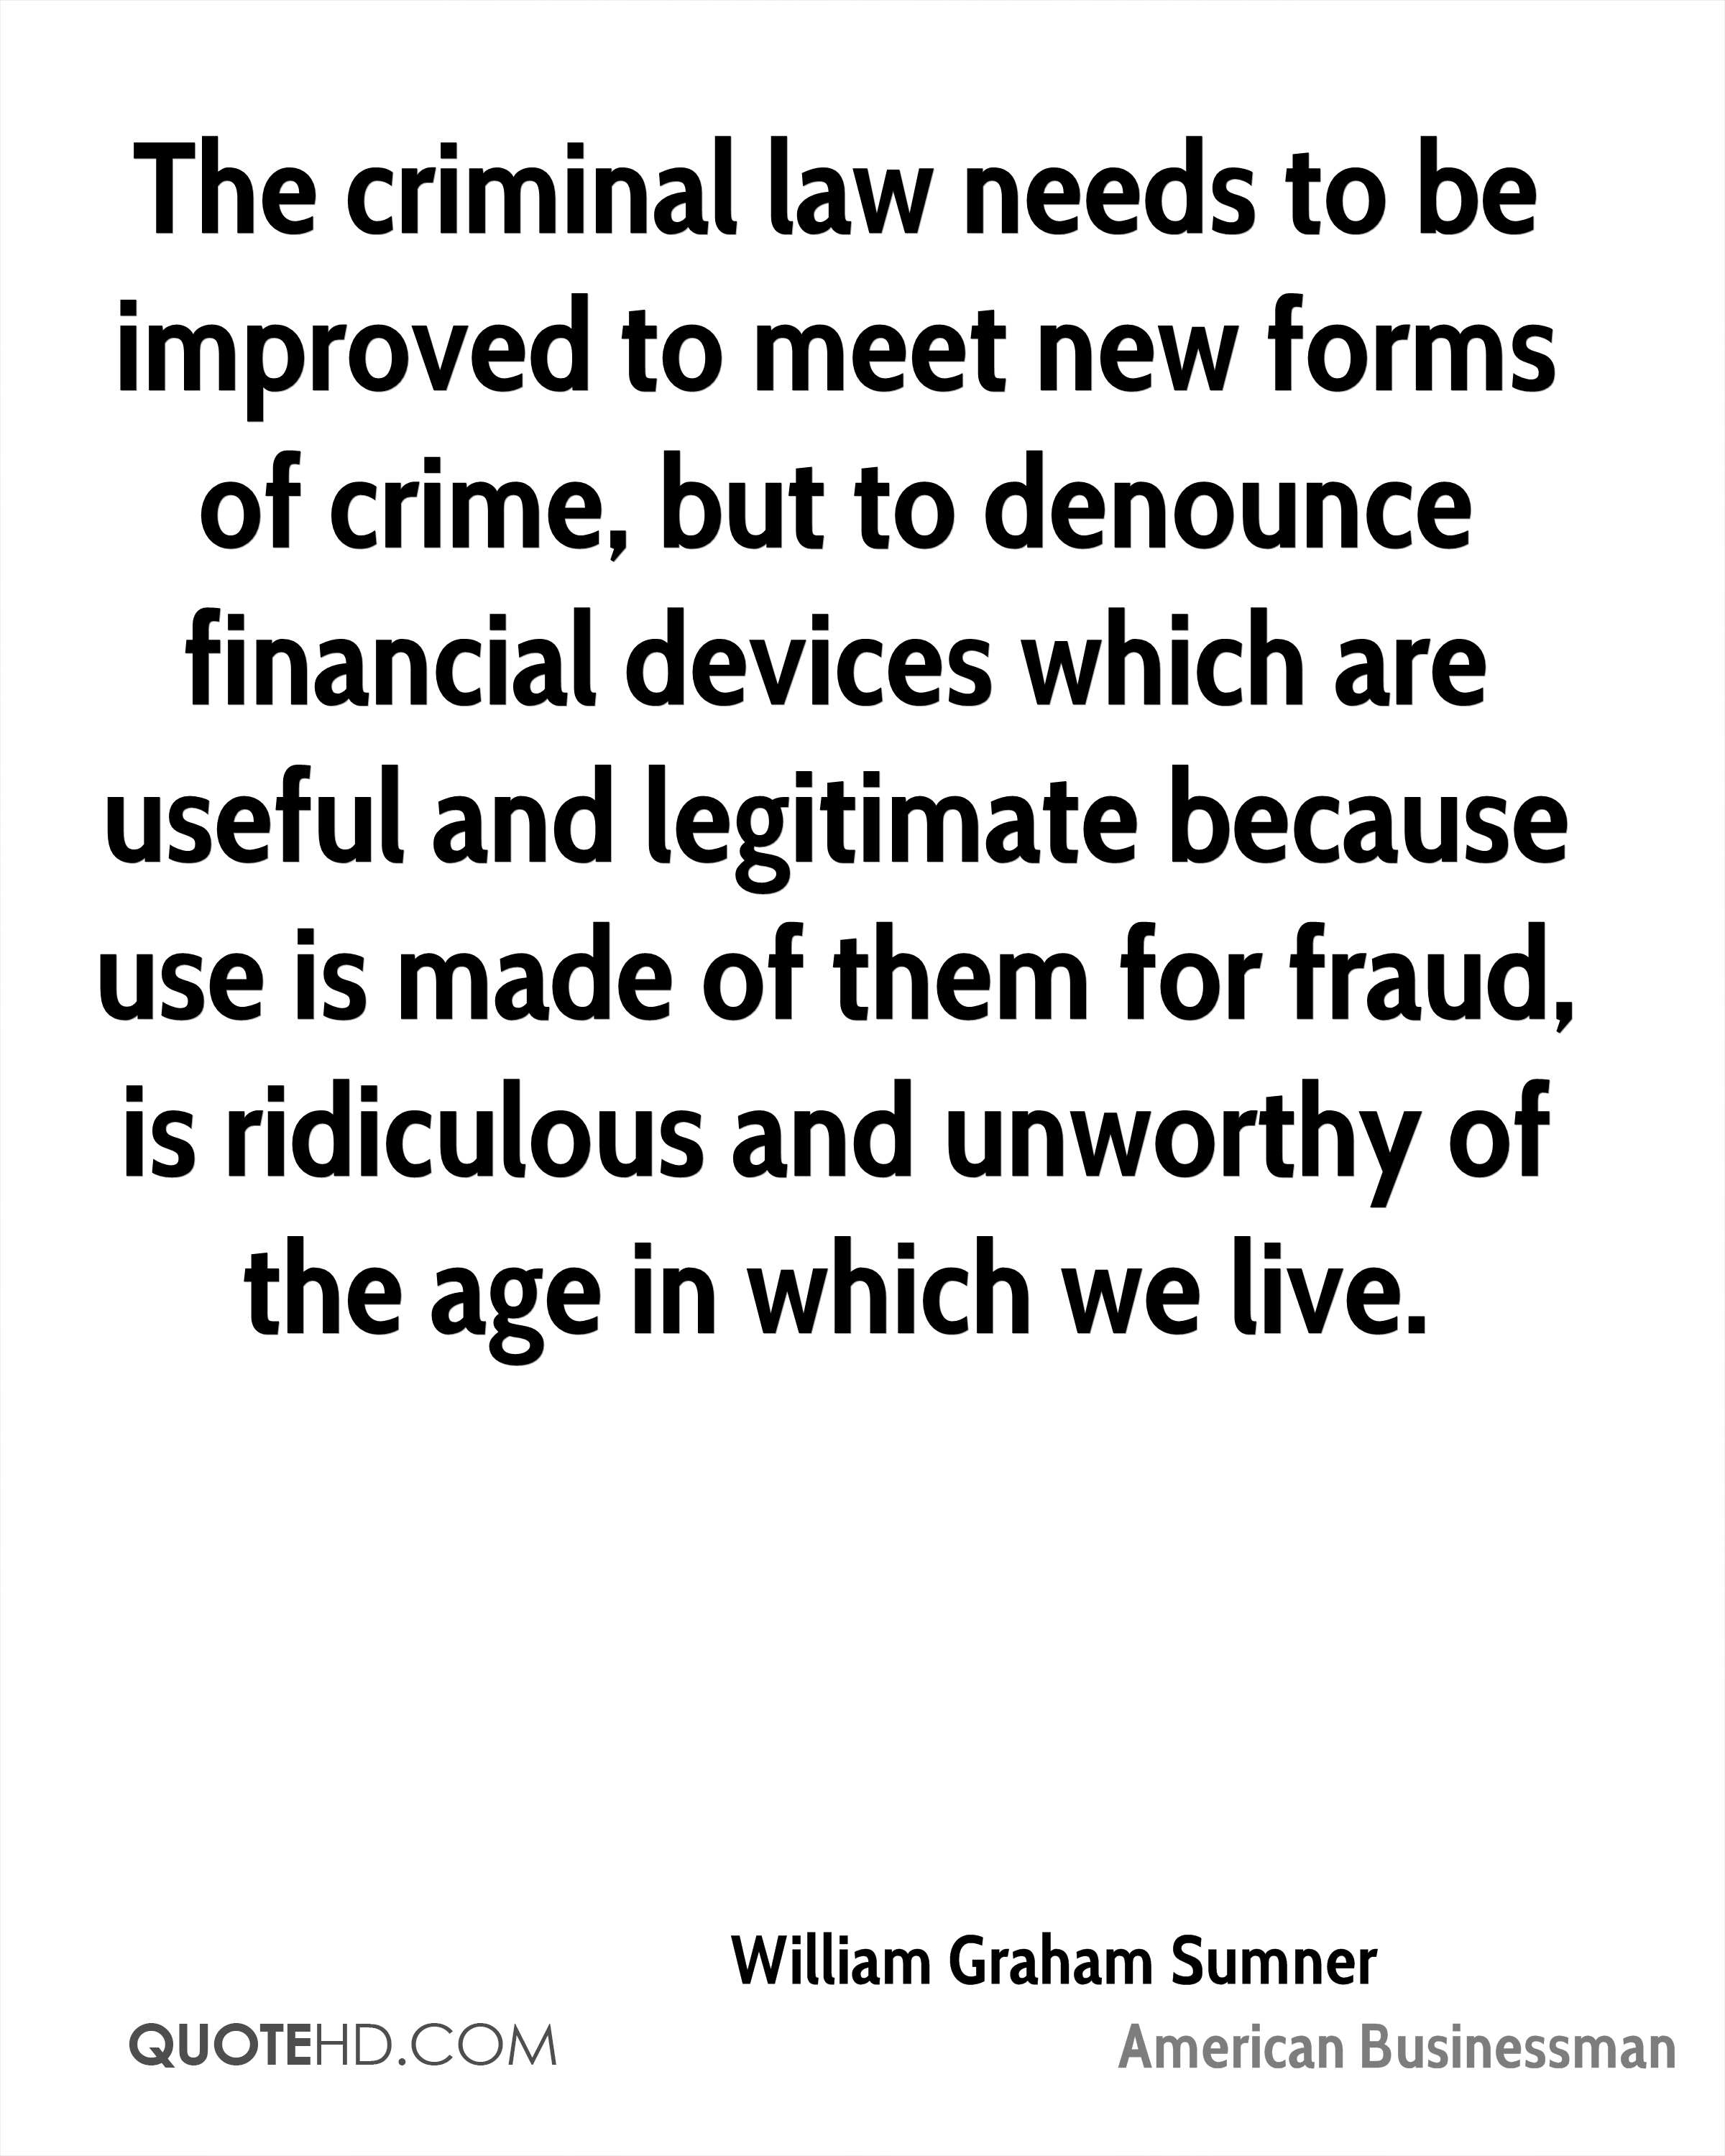 The criminal law needs to be improved to meet new forms of crime, but to denounce financial devices which are useful and legitimate because use is made of them for fraud, is ridiculous and unworthy of the age in which we live.